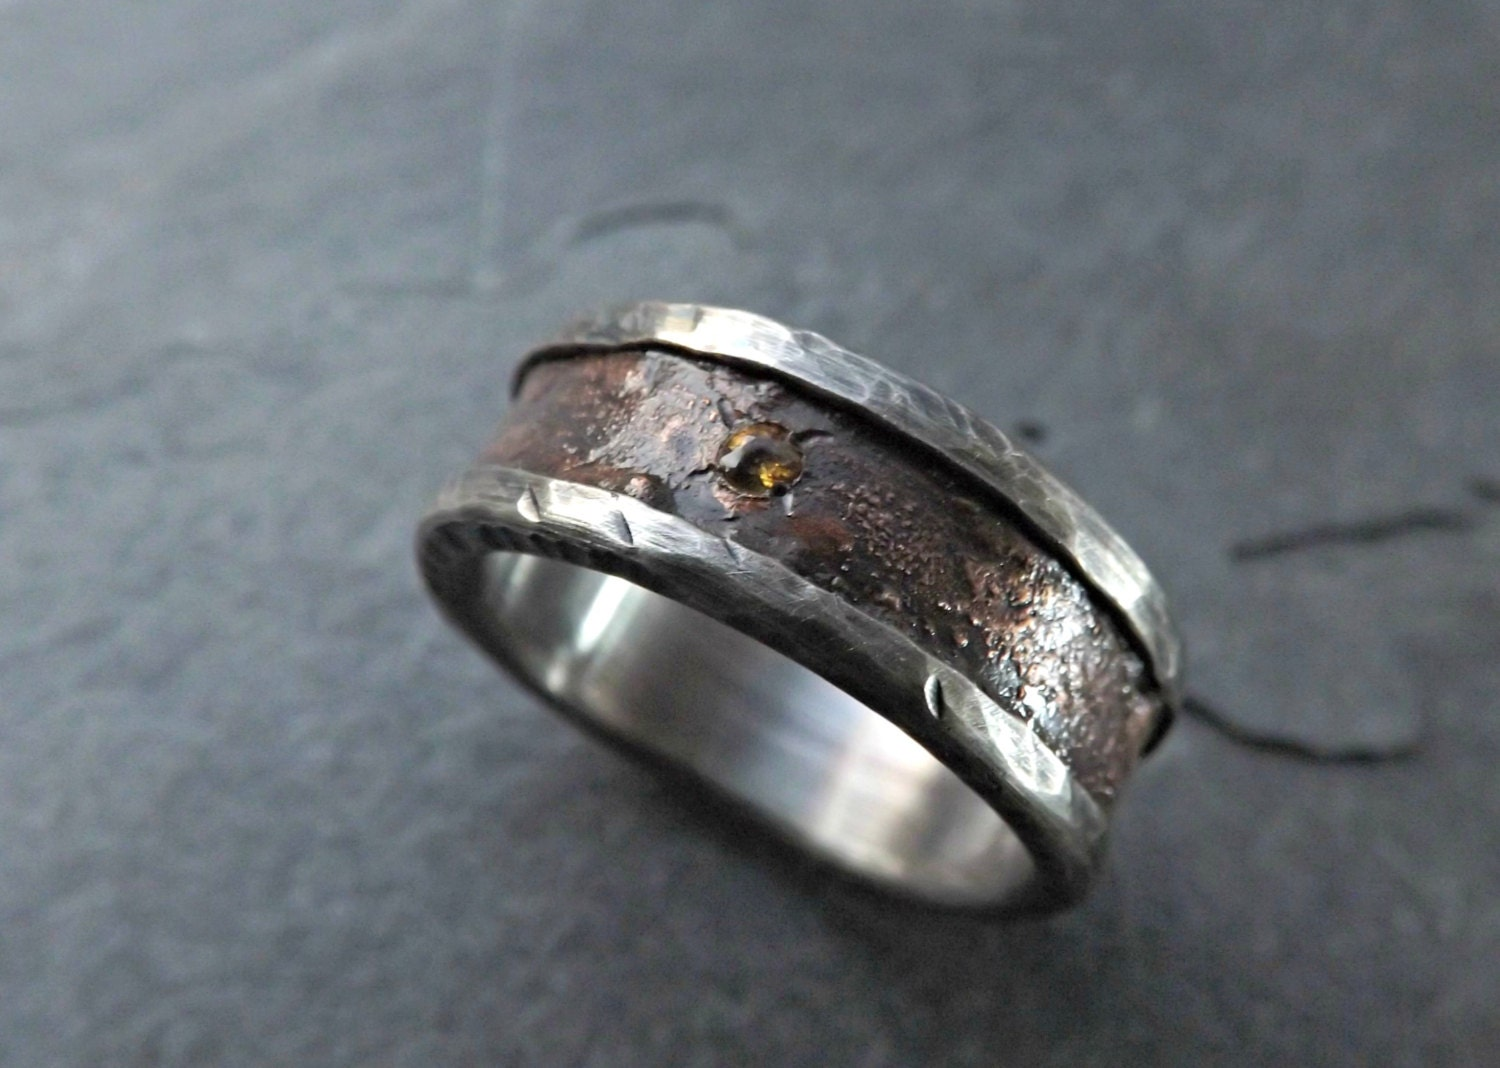 Bronze Wedding Band Silver Rustic Mens Wedding Ring. Light Blue Wedding Rings. 14k White Gold Band. Paper Necklace. Crane Watches. Animal Wedding Rings. Turquoise Anklet Bracelets. White Gold Diamond Anklet. Common Engagement Rings